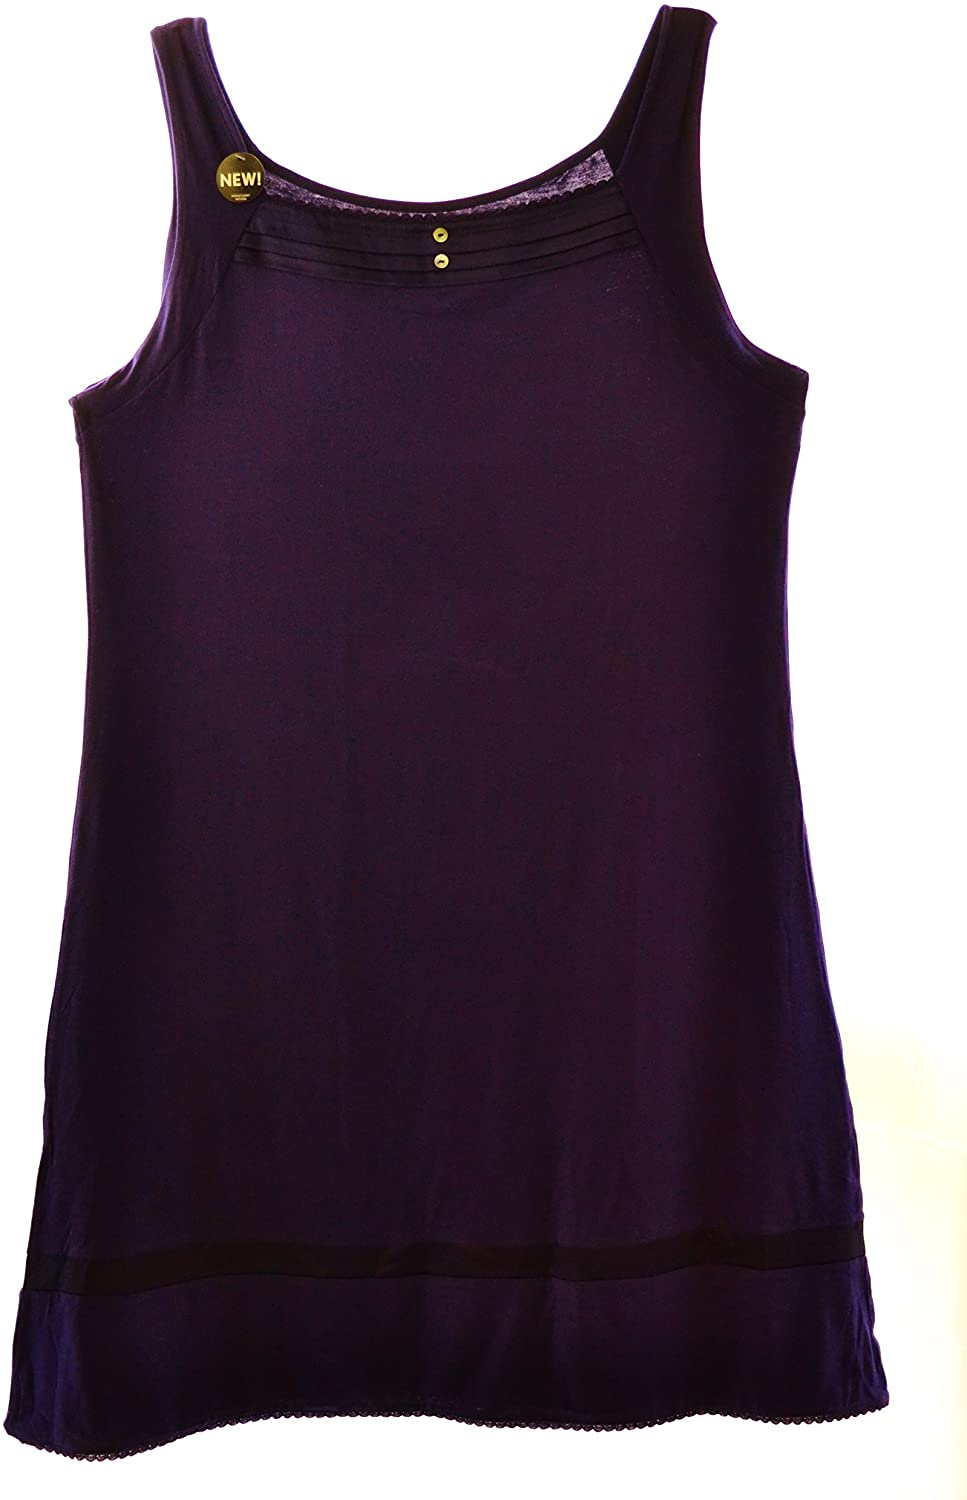 Vanity Fair Modal Sleeveless Nightgown